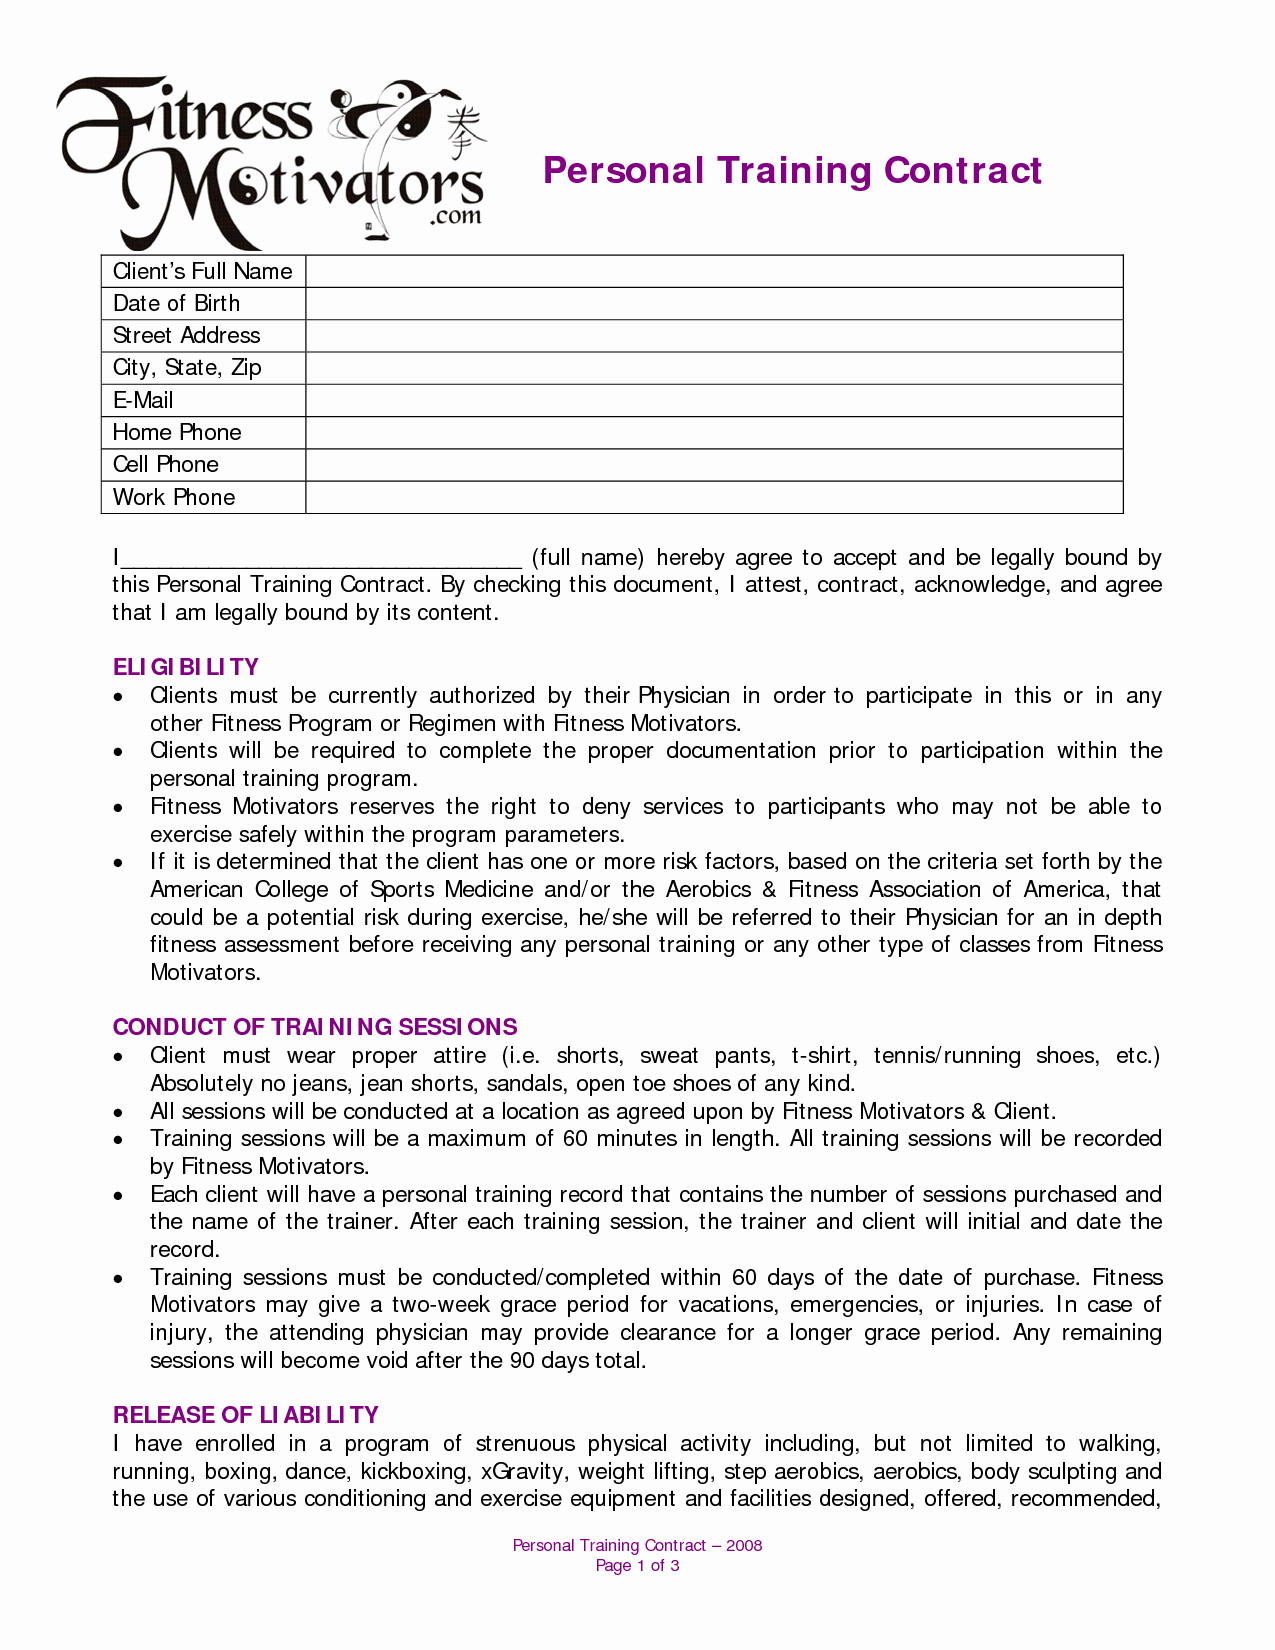 Personal Training Agreement Template Luxury Personal Training Contract Agreement